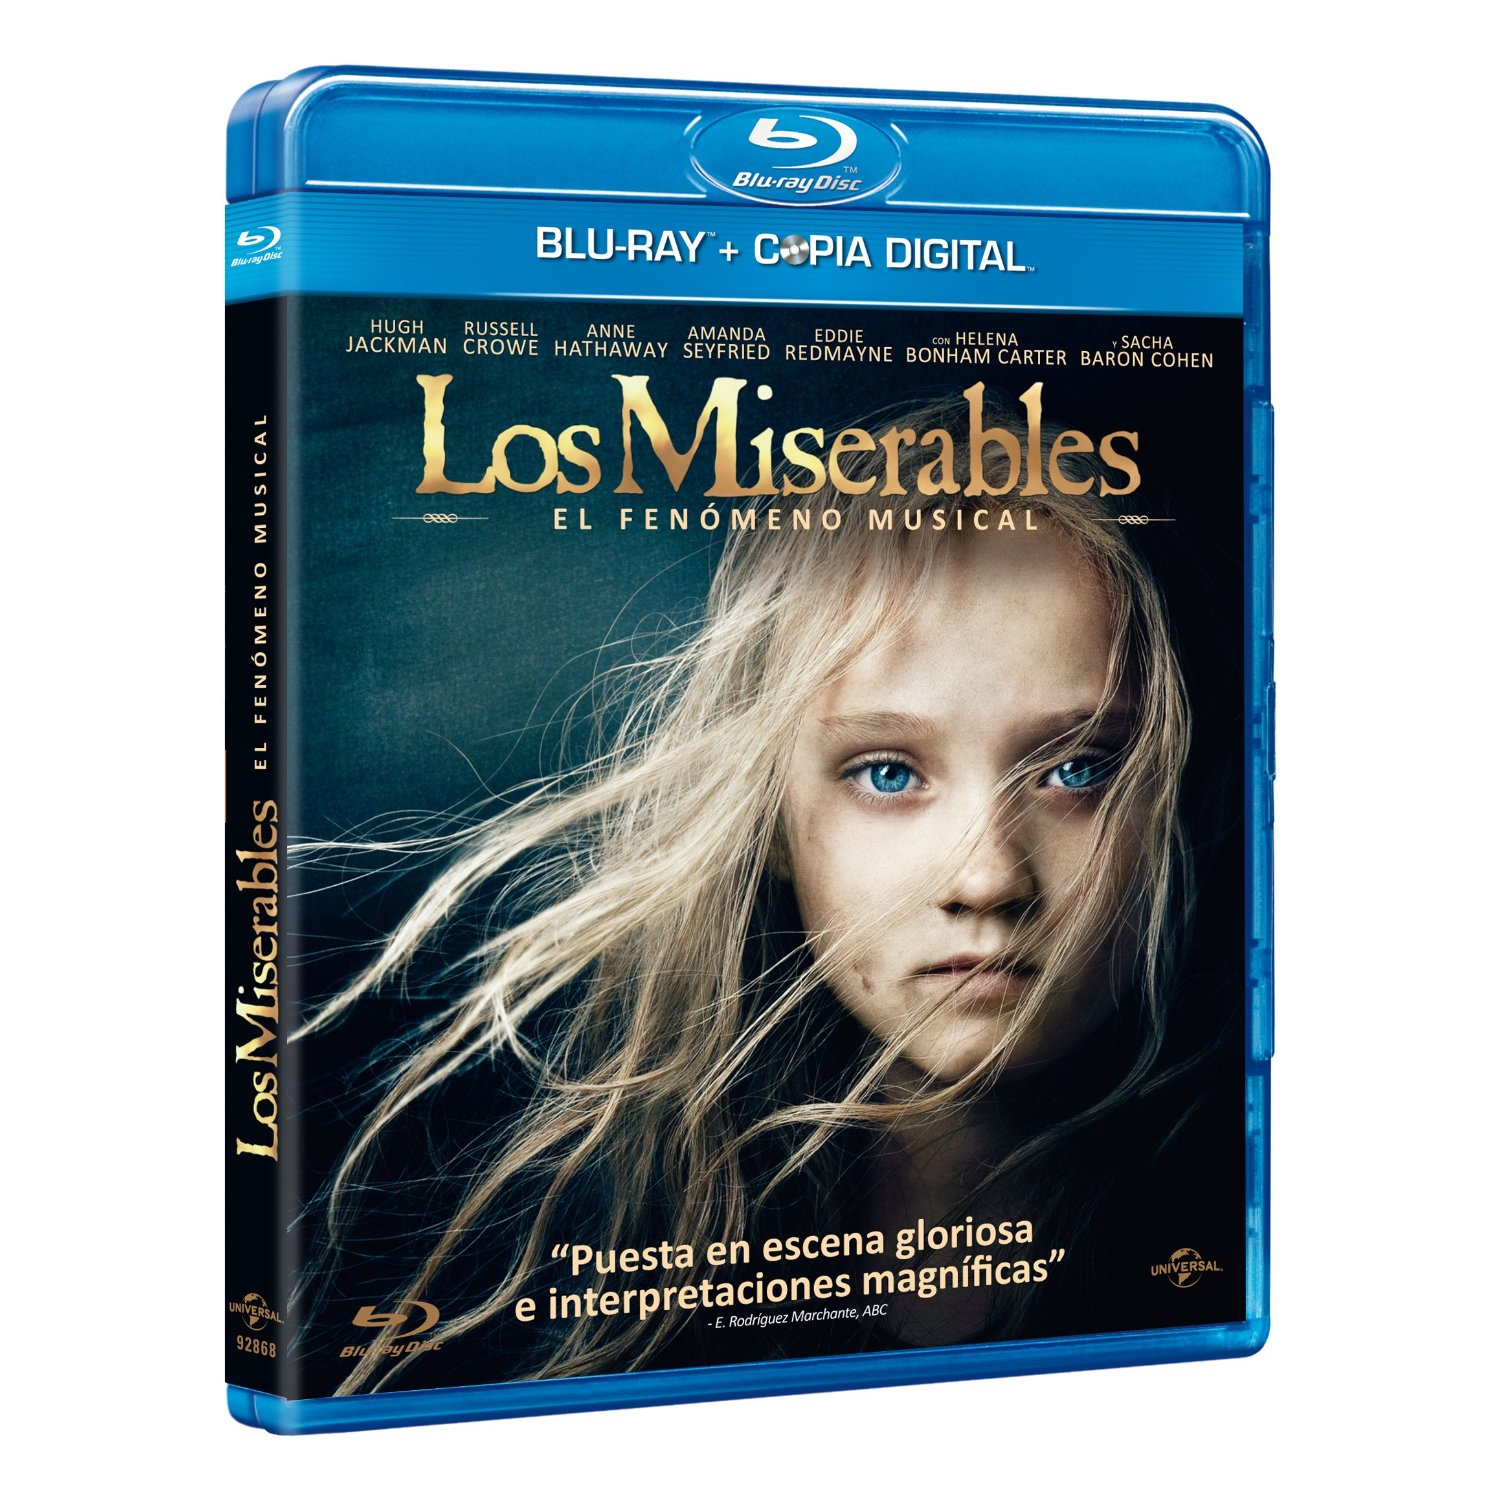 Los Miserables (Les Misérables)